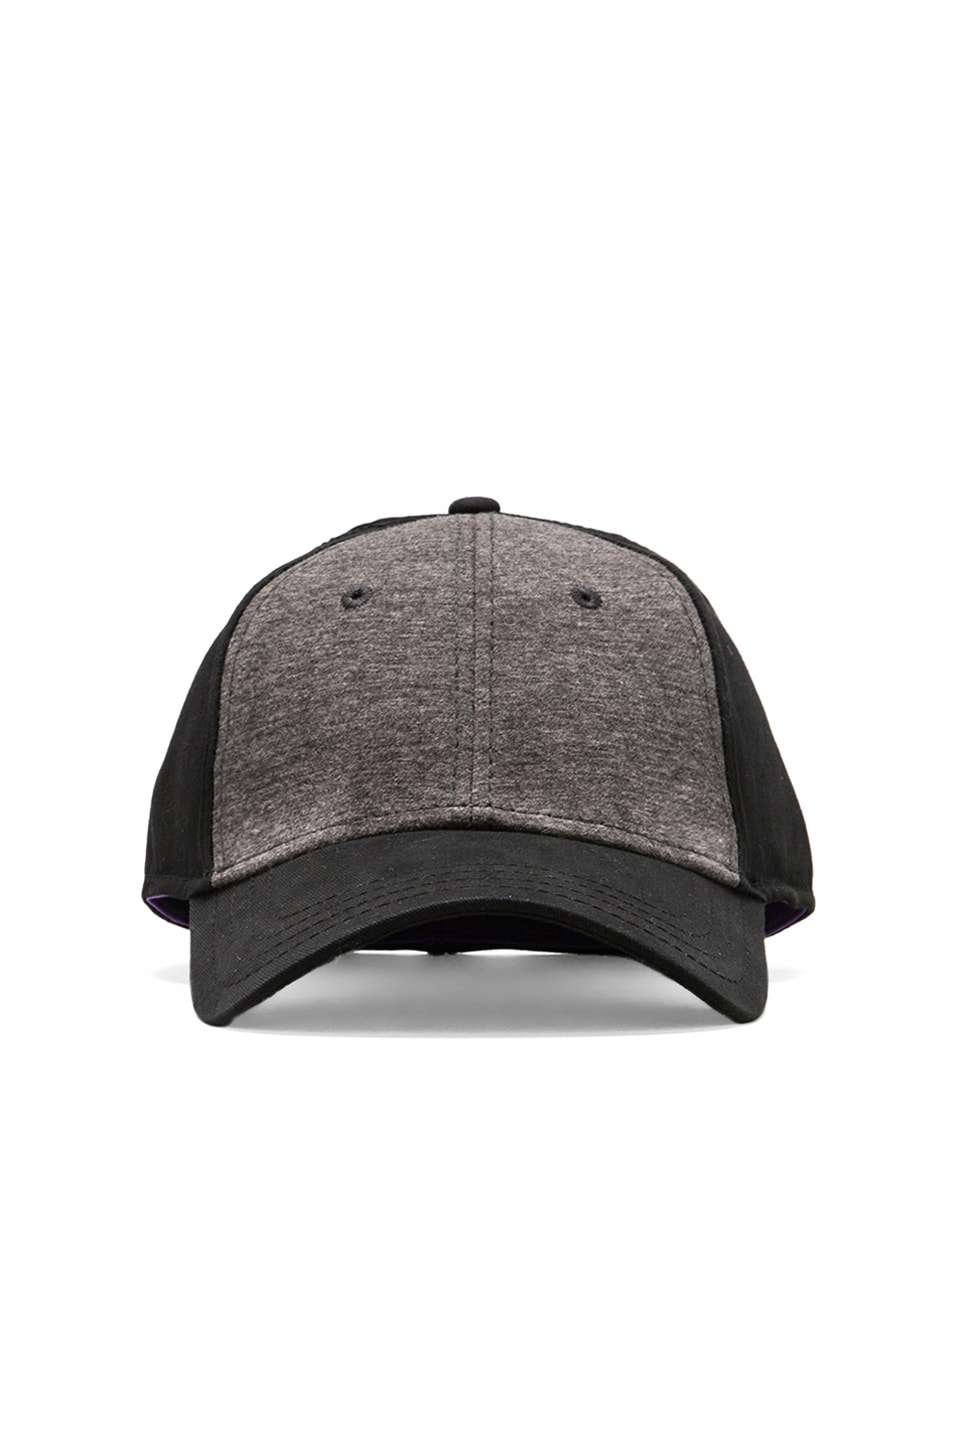 Gents Co. Jersey Knit Cap en Noir/Gris